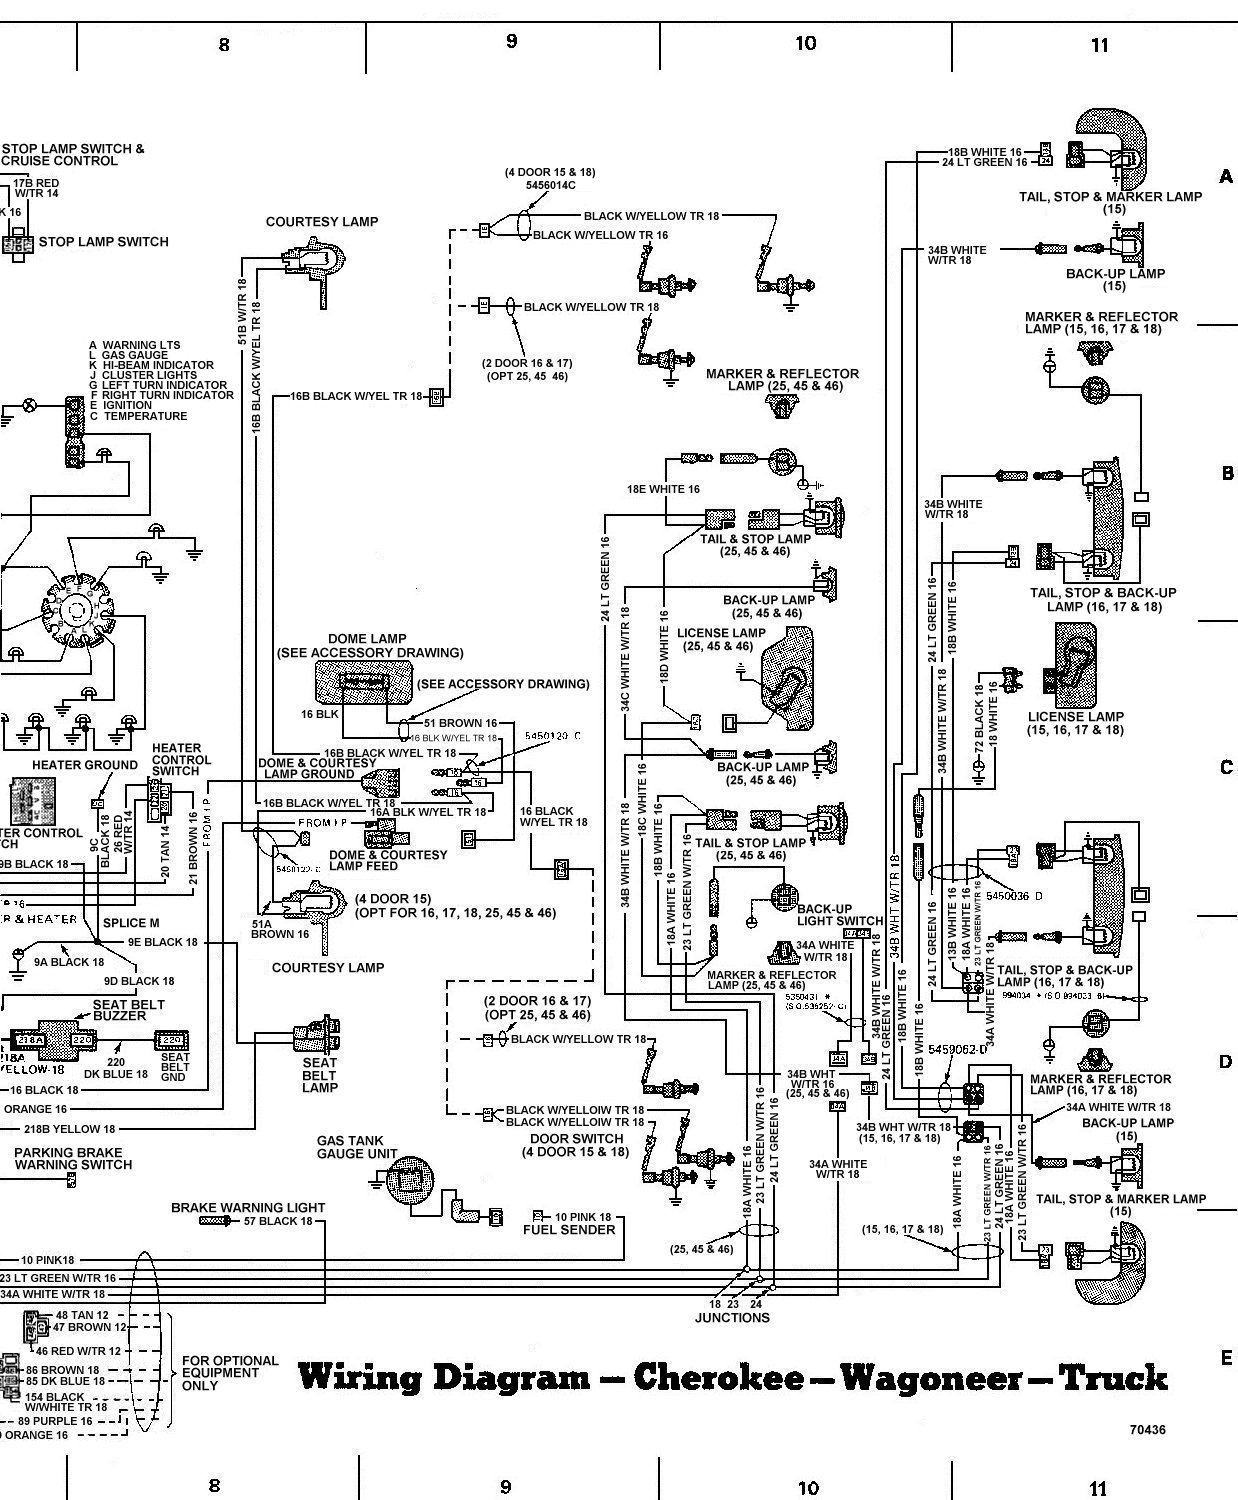 2002 Jeep Grand Cherokee Laredo Wiring Diagram Worksheet And Radio 2001 Harness Schematics Rh Caltech Ctp Com